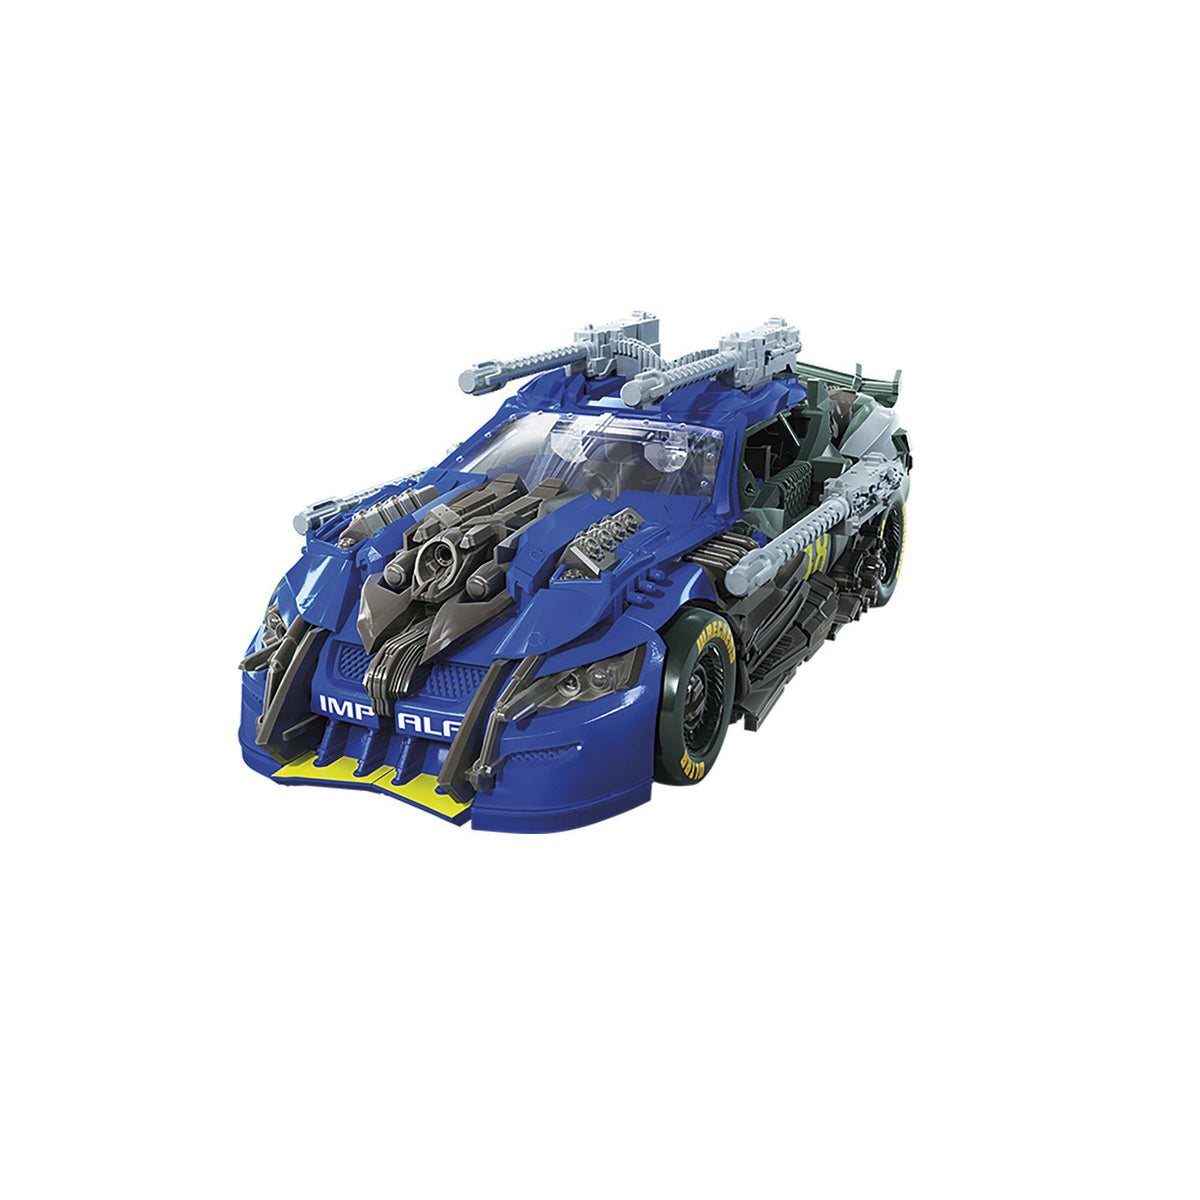 TRANSFORMERS GENERATIONS STUDIO SERIES DELUXE - DARK OF THE MOON TOPSPIN ACTION FIGURE